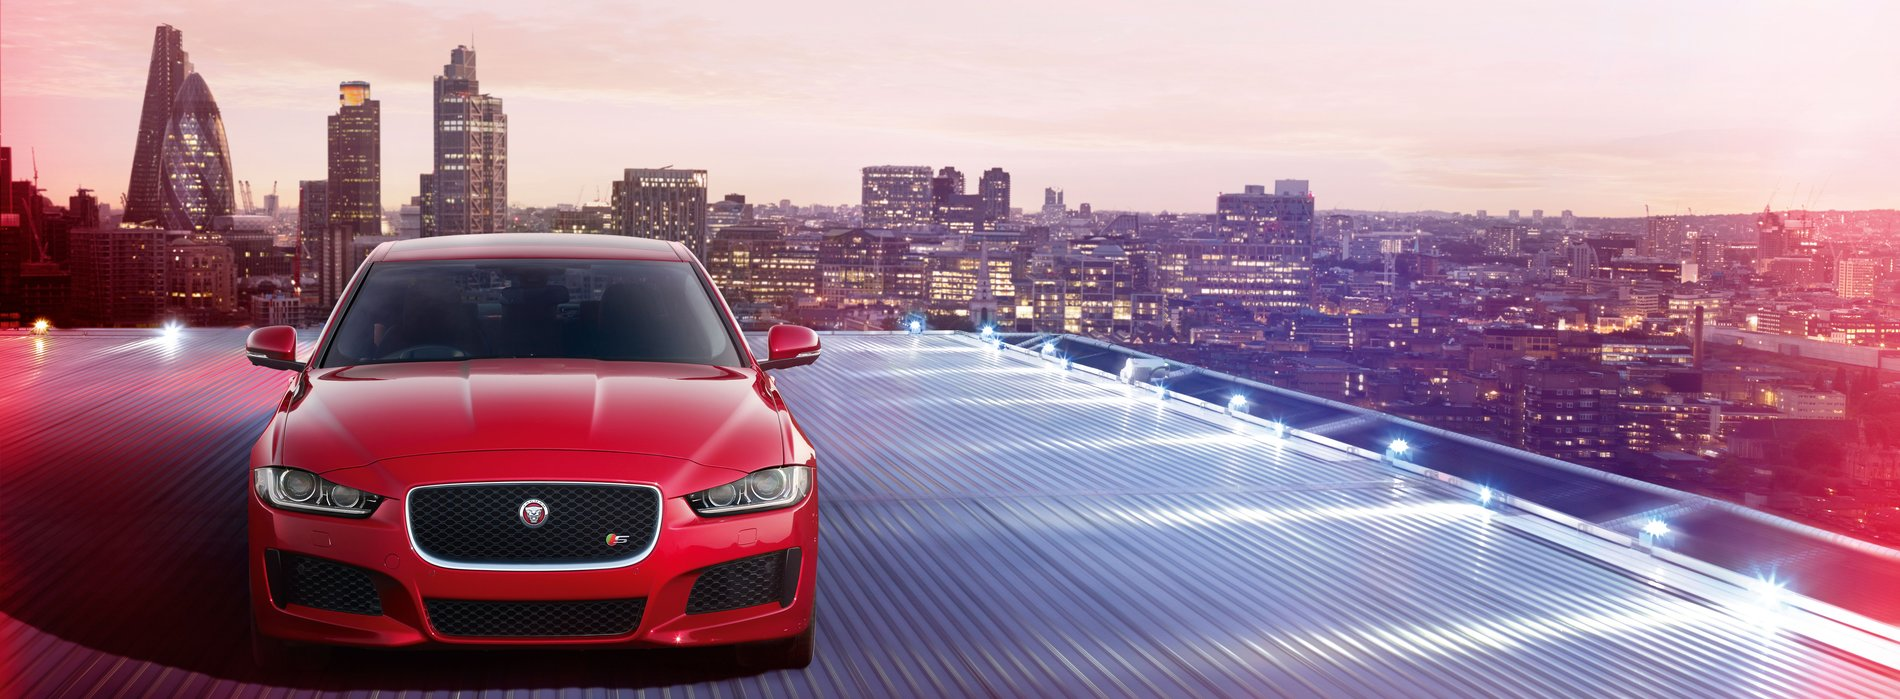 The All New 2017 Jaguar XE